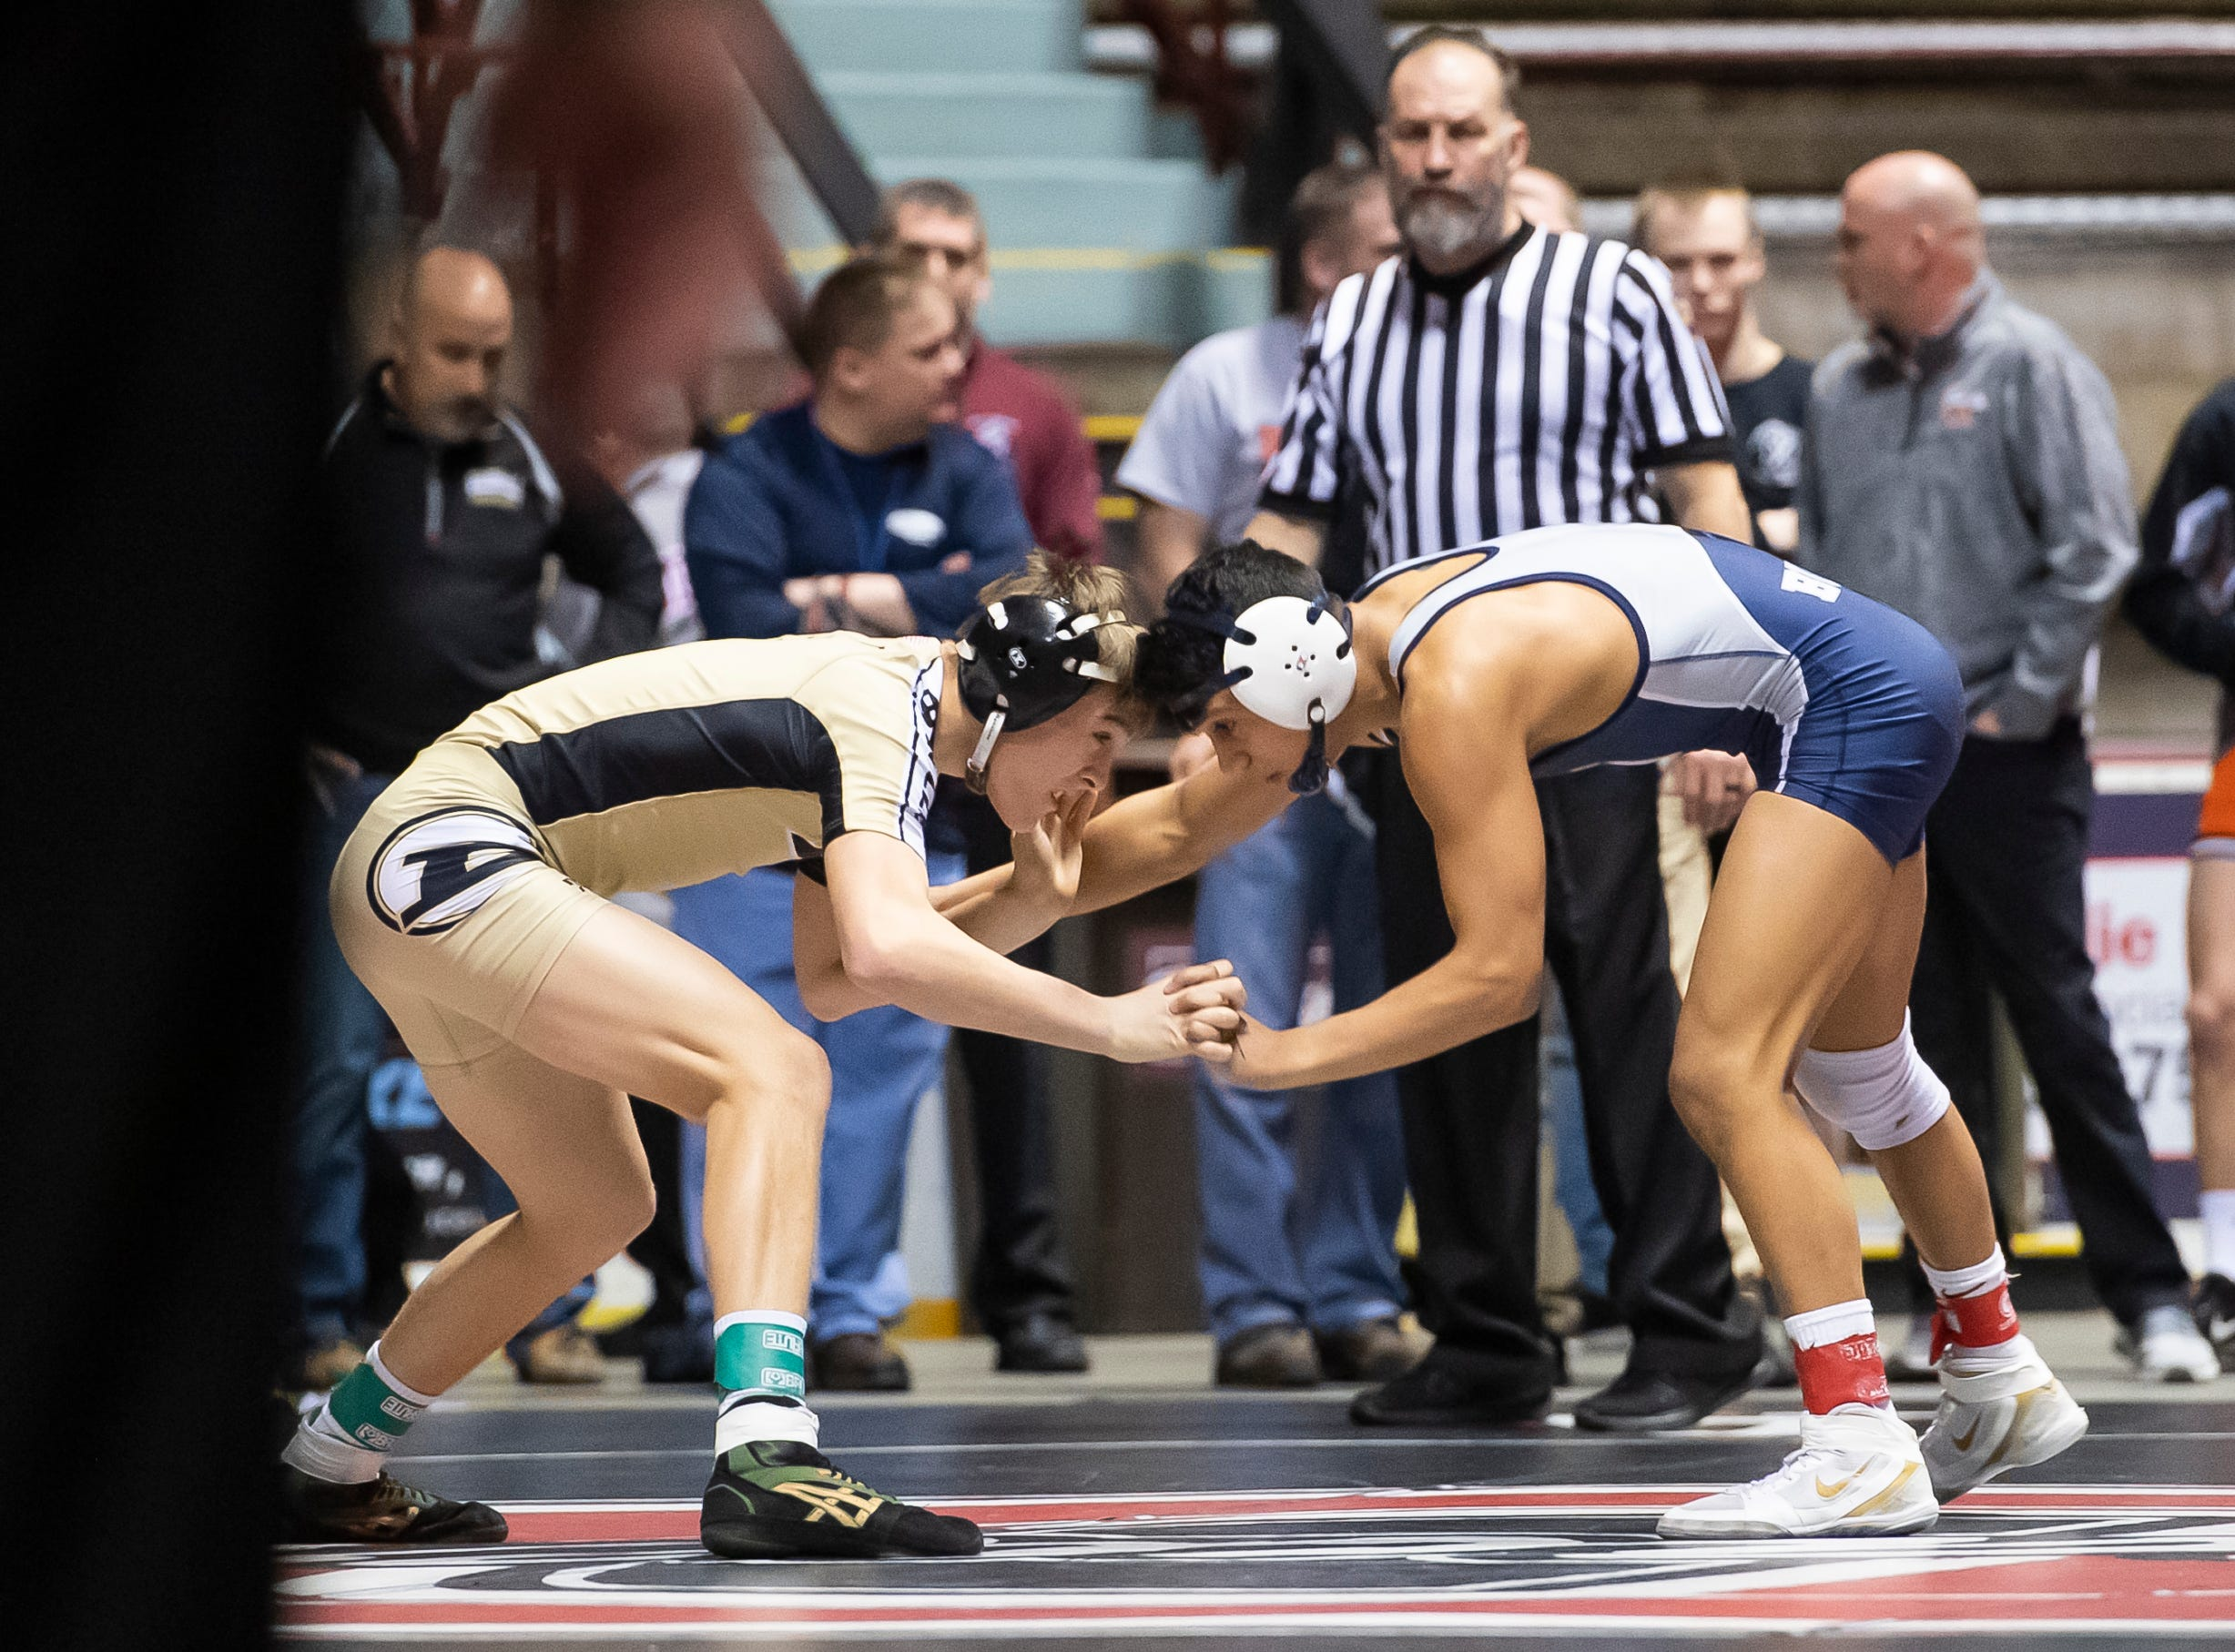 Biglerville's Eli Tuckey, left, wrestles Newport's Dorian Gonzalez during a 132-pound semifinal bout at the District 3 wrestling championships at Hersheypark Arena Saturday, February 23, 2019. Tuckey won by decision 3-2.